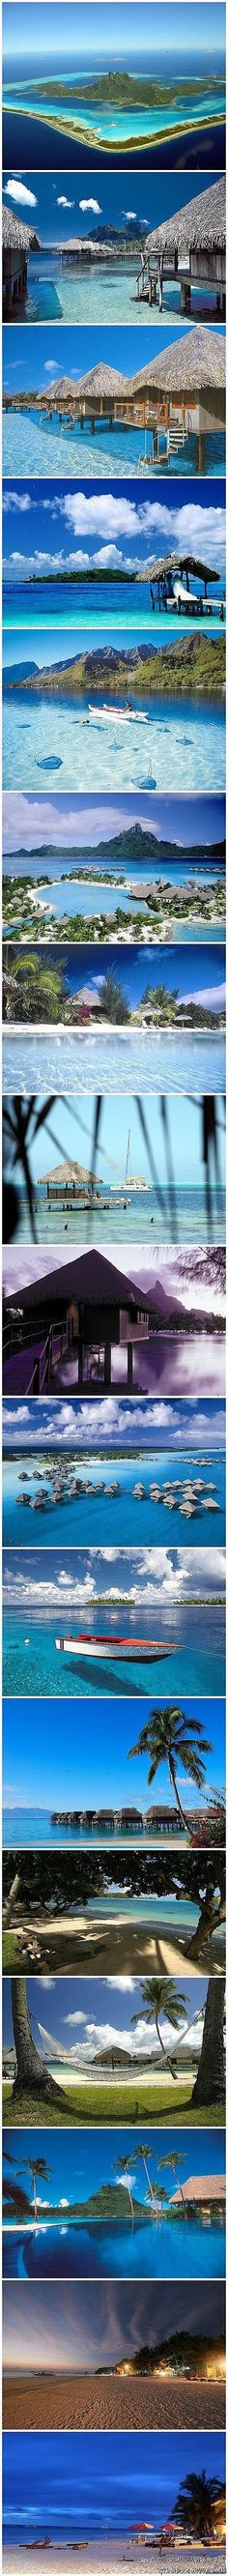 Bora Bora,Tahiti #honeymoon #borabora